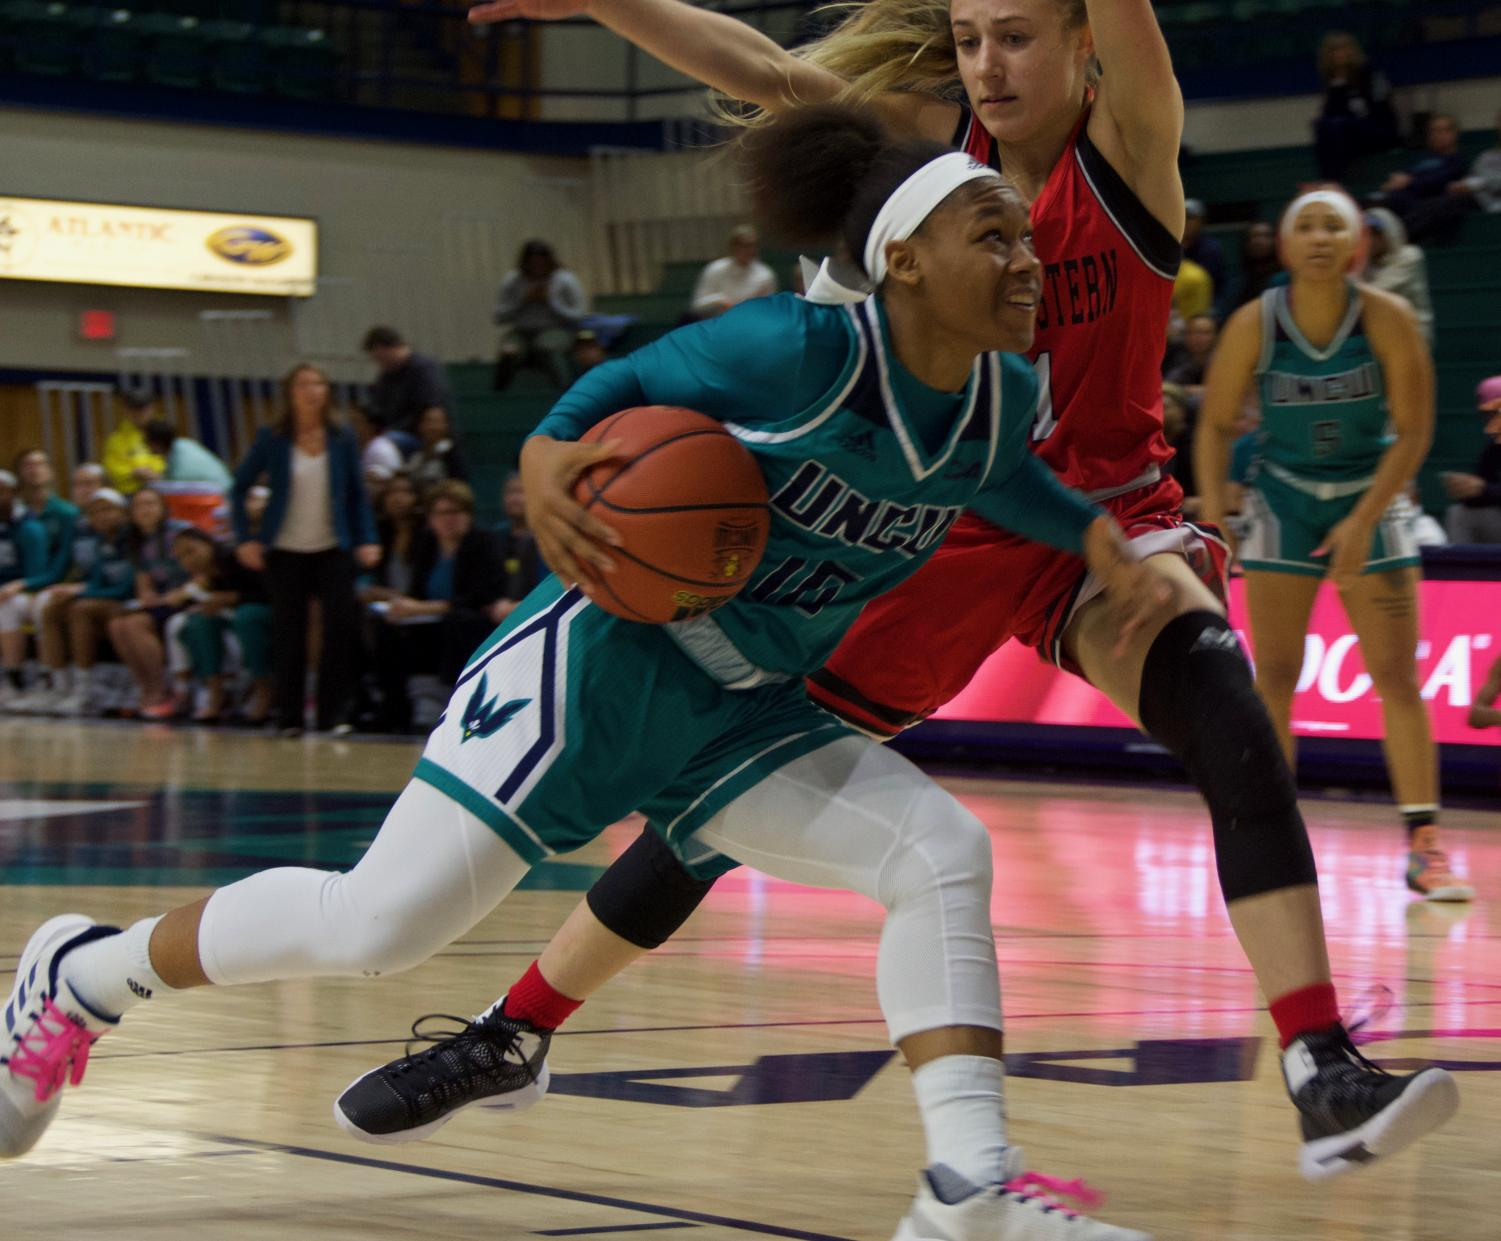 Ahyiona Vason (10) drives past a defender during UNCW's contest against Northeastern on Feb. 3, 2019.